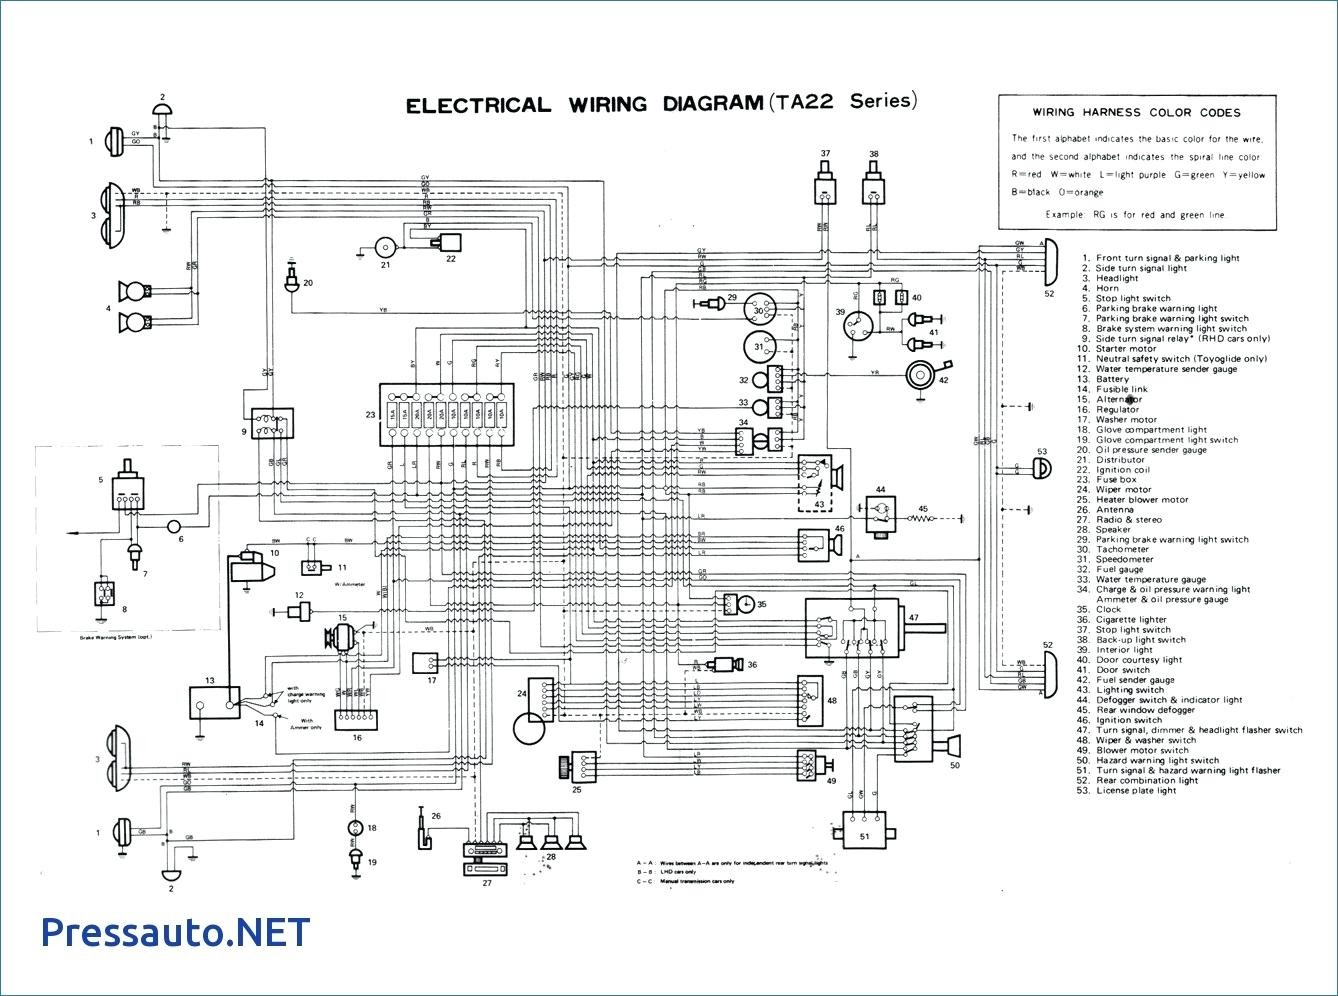 hight resolution of john deere 5200 wiring diagram wiring schematic diagram 16 pegjohn deere 5200 tractor wiring diagram wiring